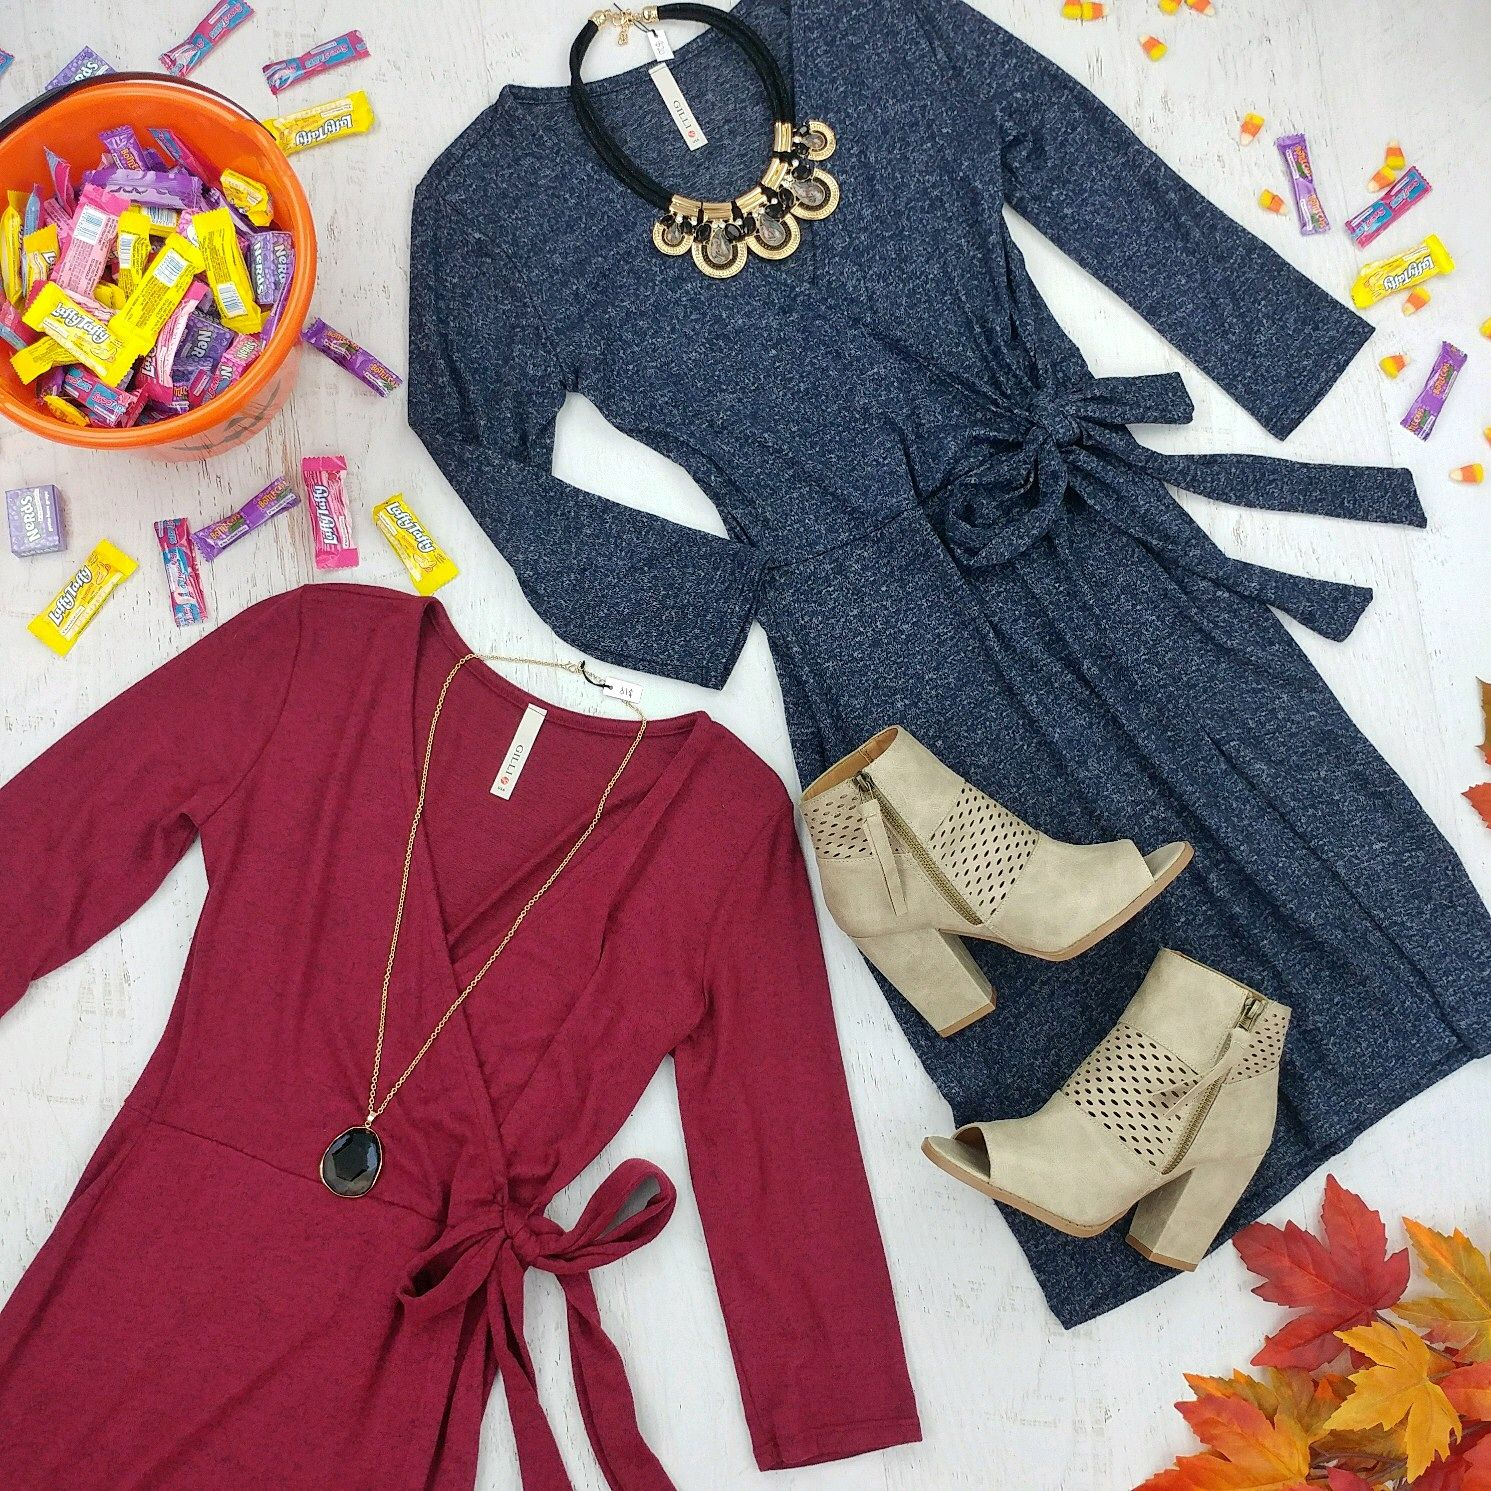 Pin by misred outfitters on halloween fall vibes pinterest wrap